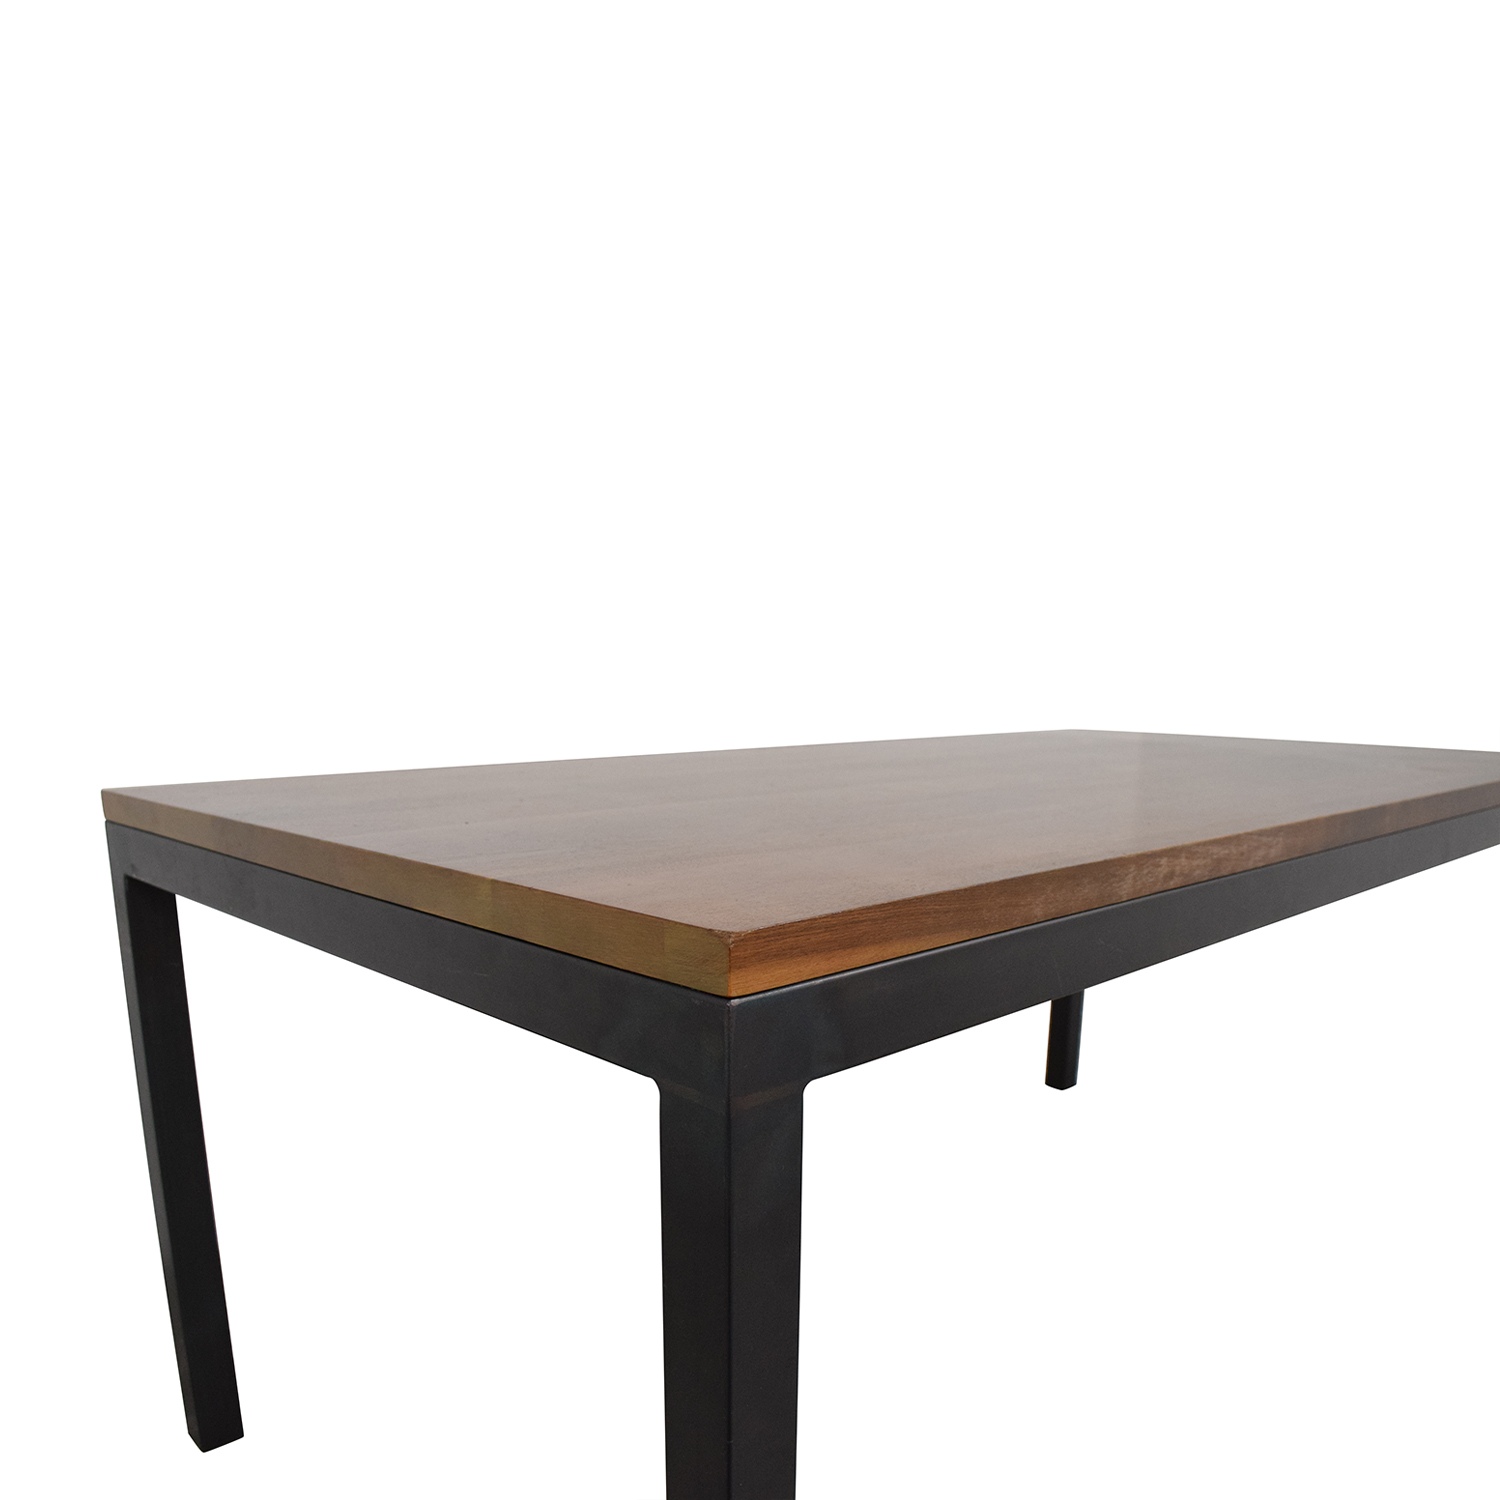 61 off room board room board walnut parsons table with natural steel tables